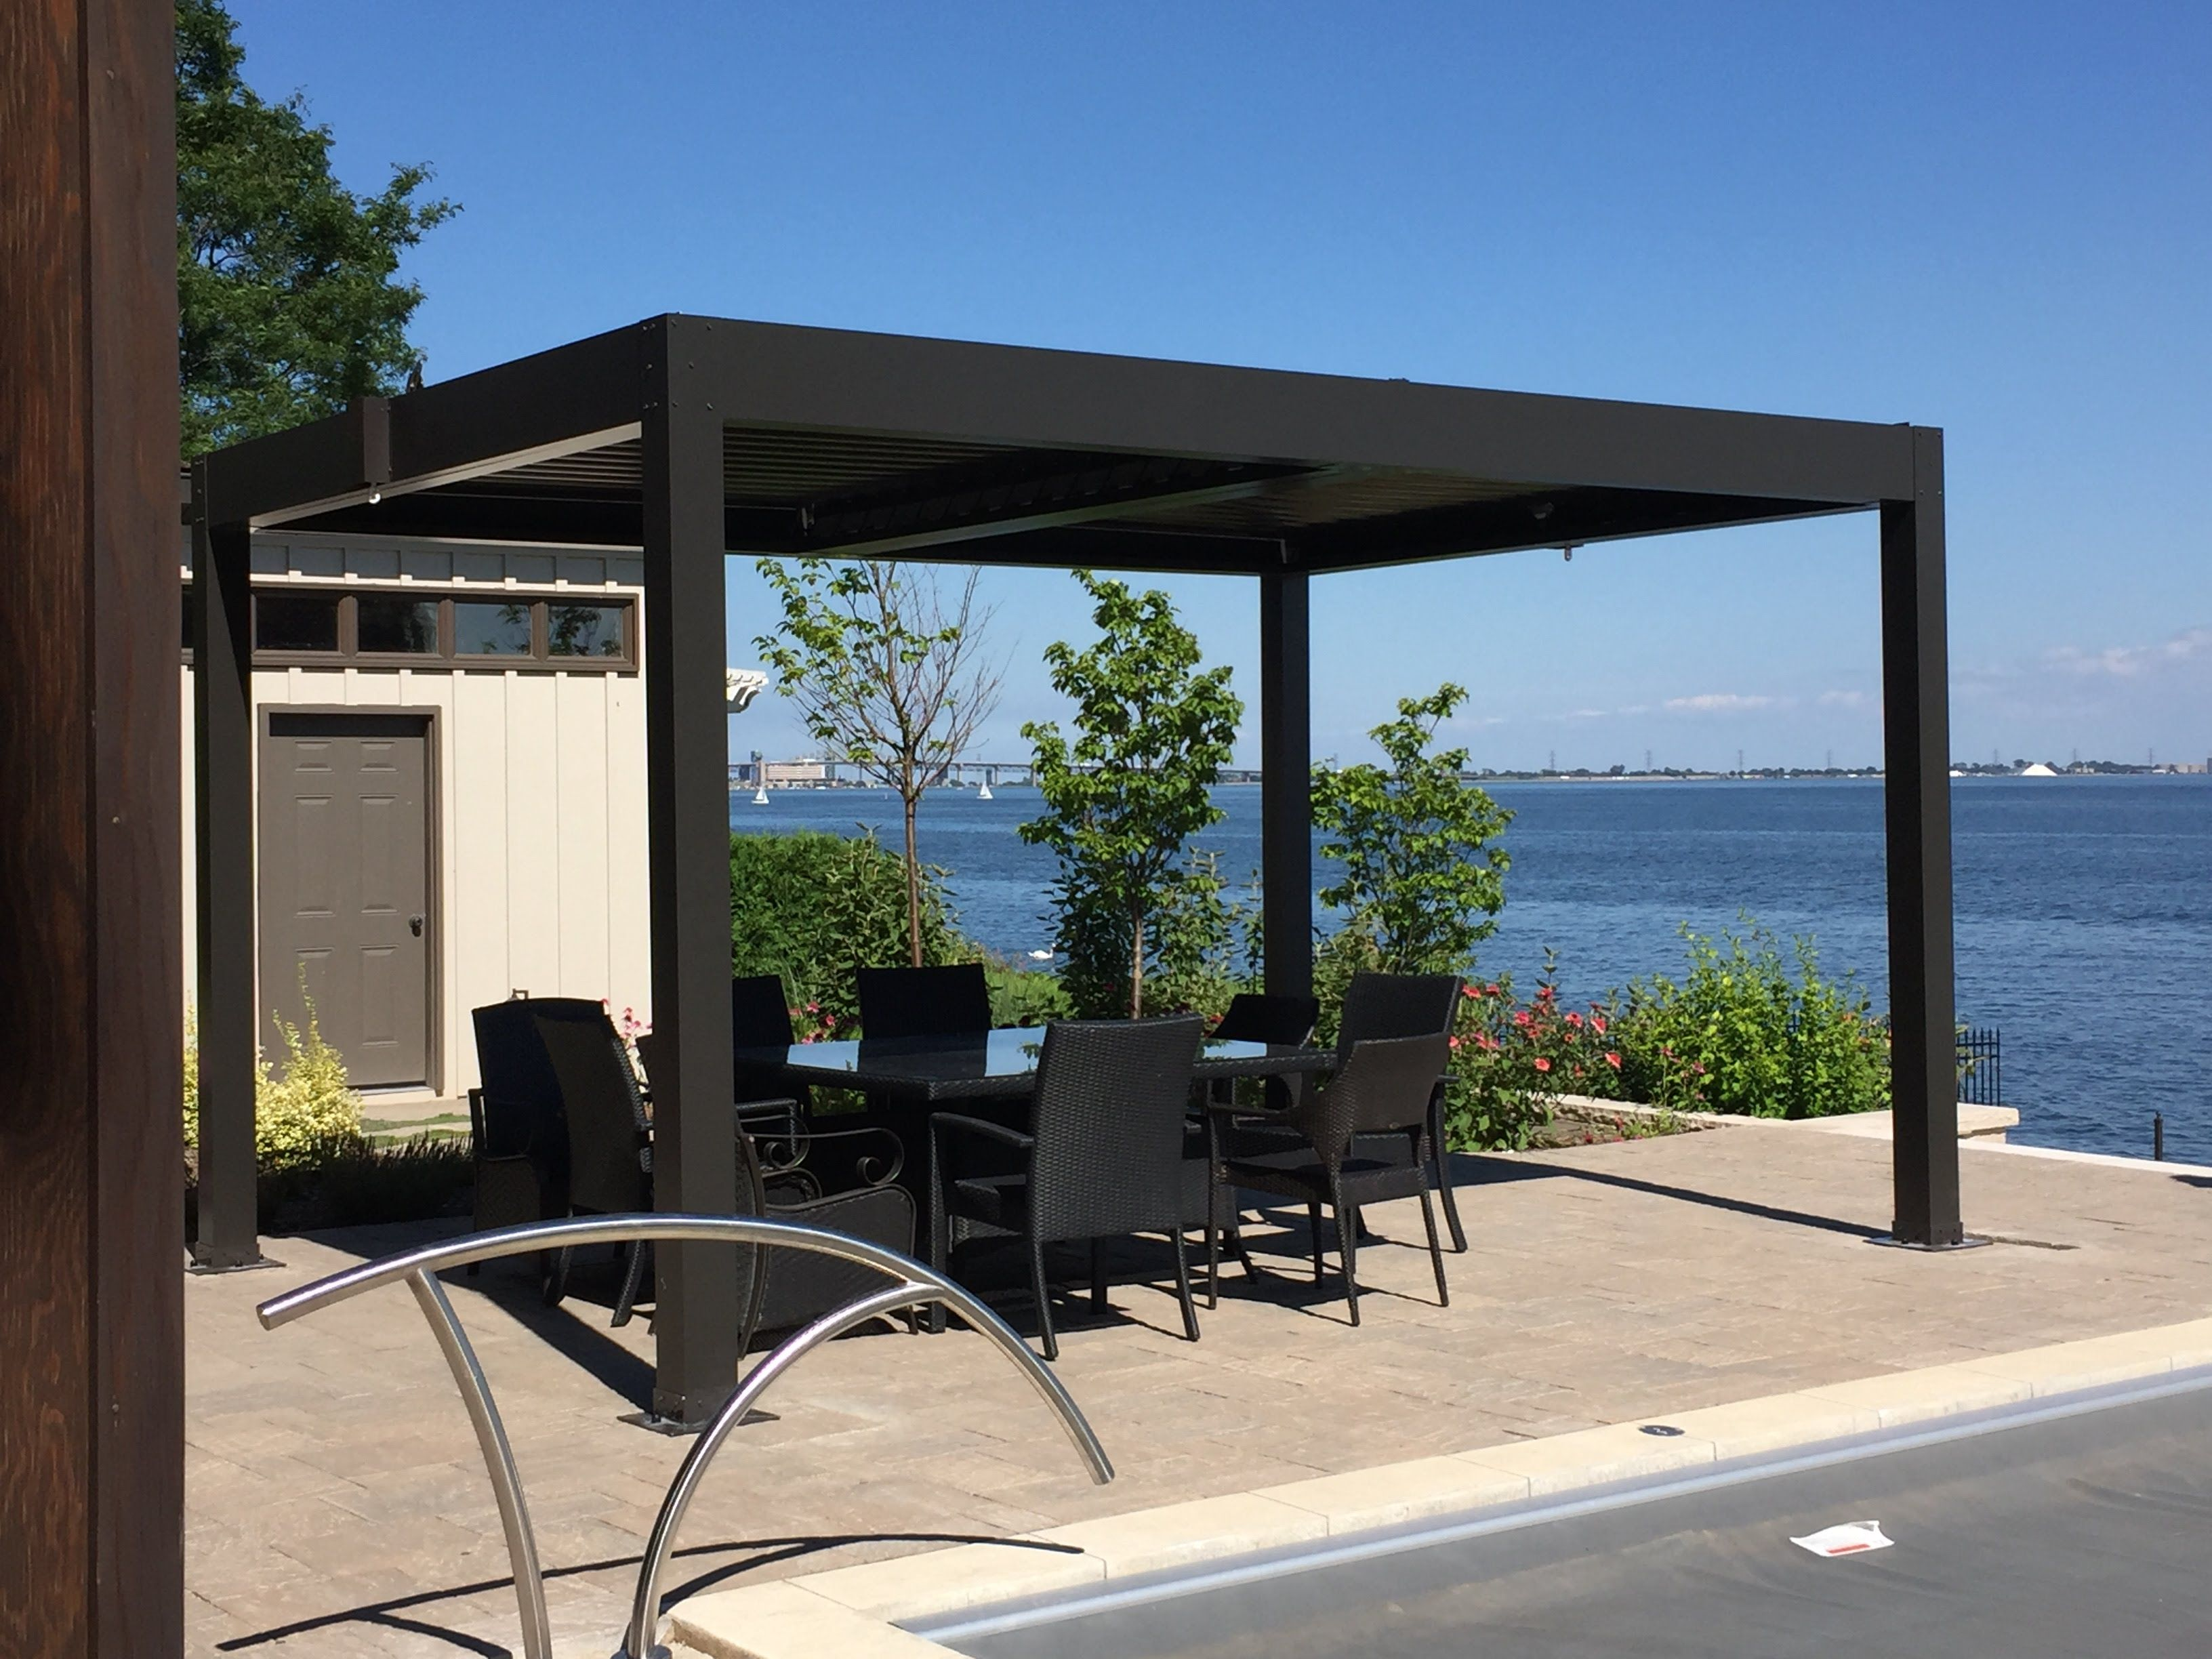 Enjoy your outdoor space with the aluminum pergola!